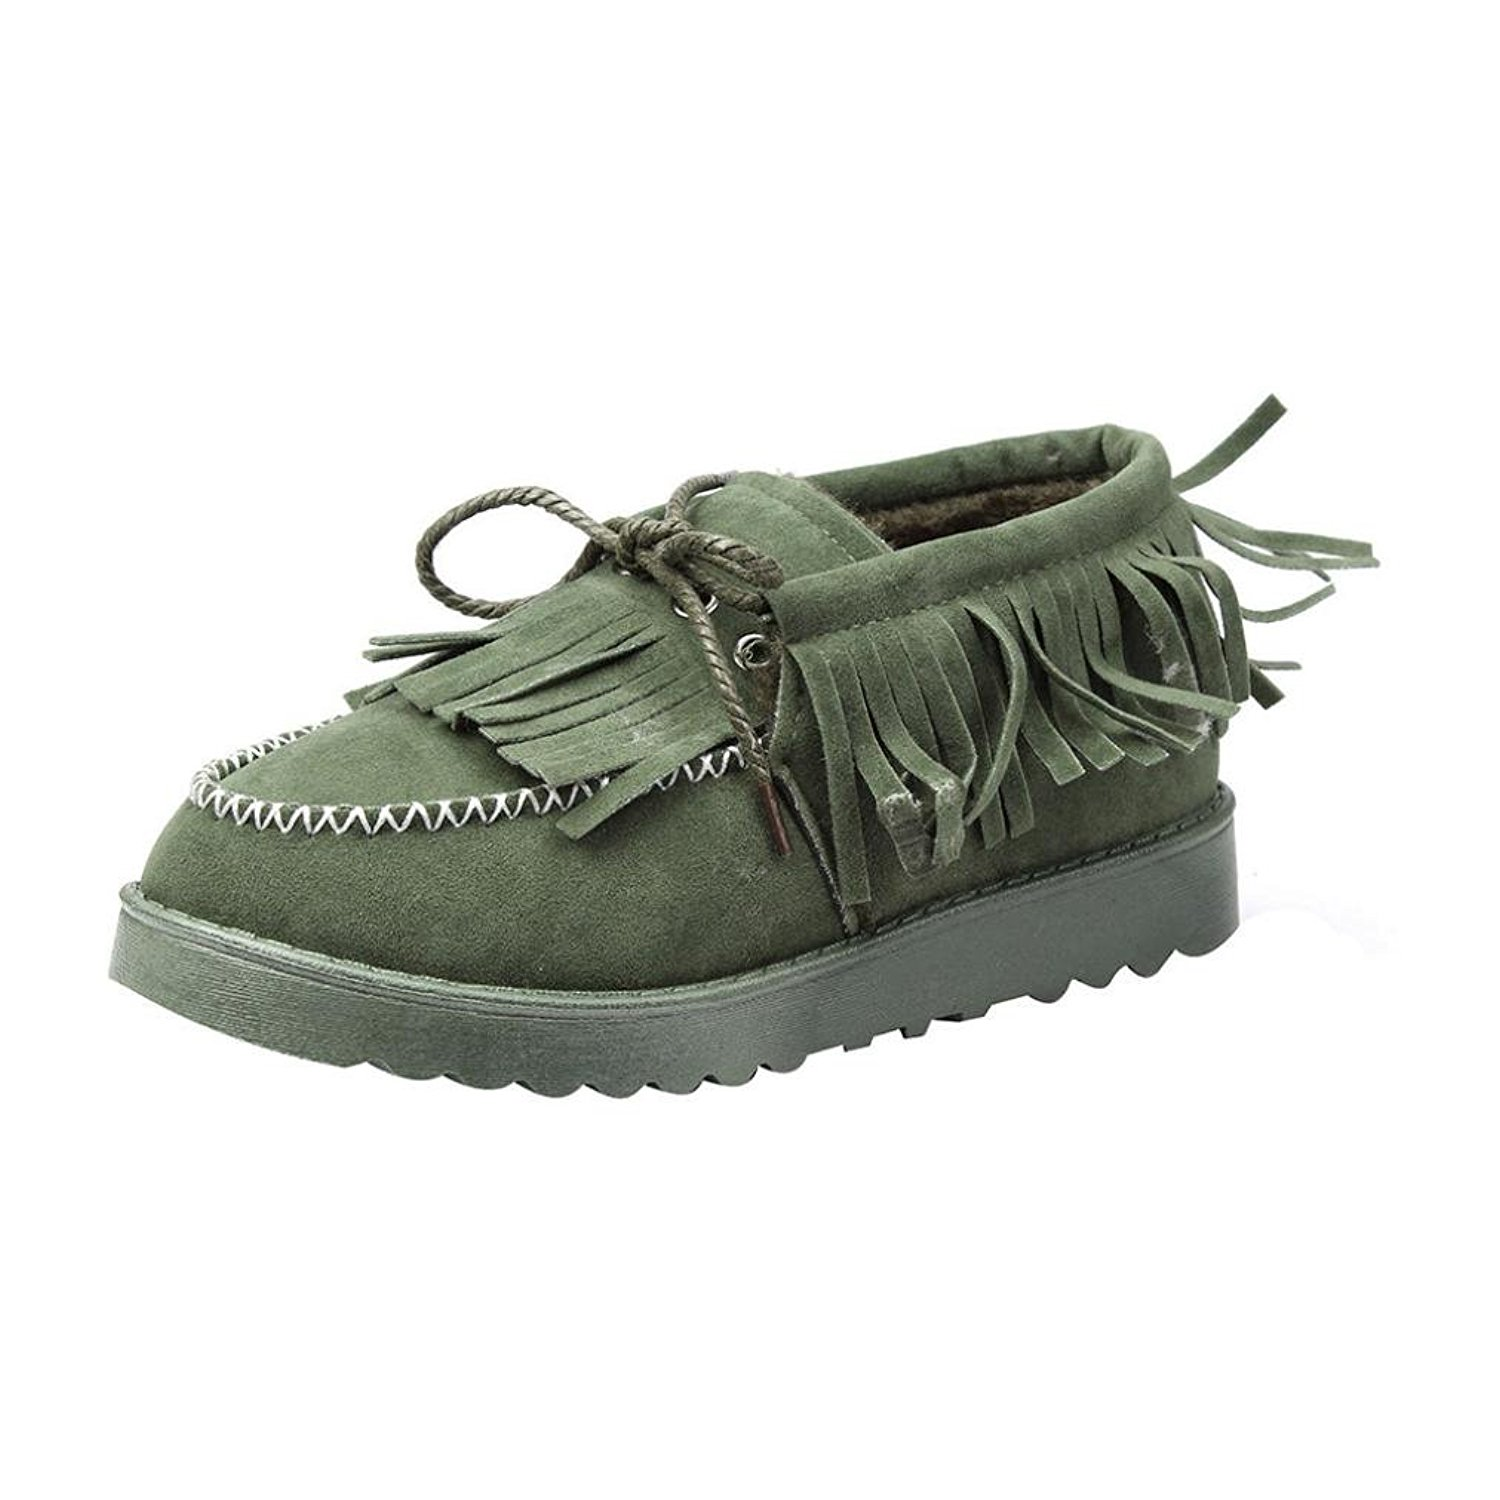 DEESEE(TM) Women Tassel Boots Flat Ankle Fur Lined Winter Warm Snow Shoes Lazy Shoes (US 5.5, Green)